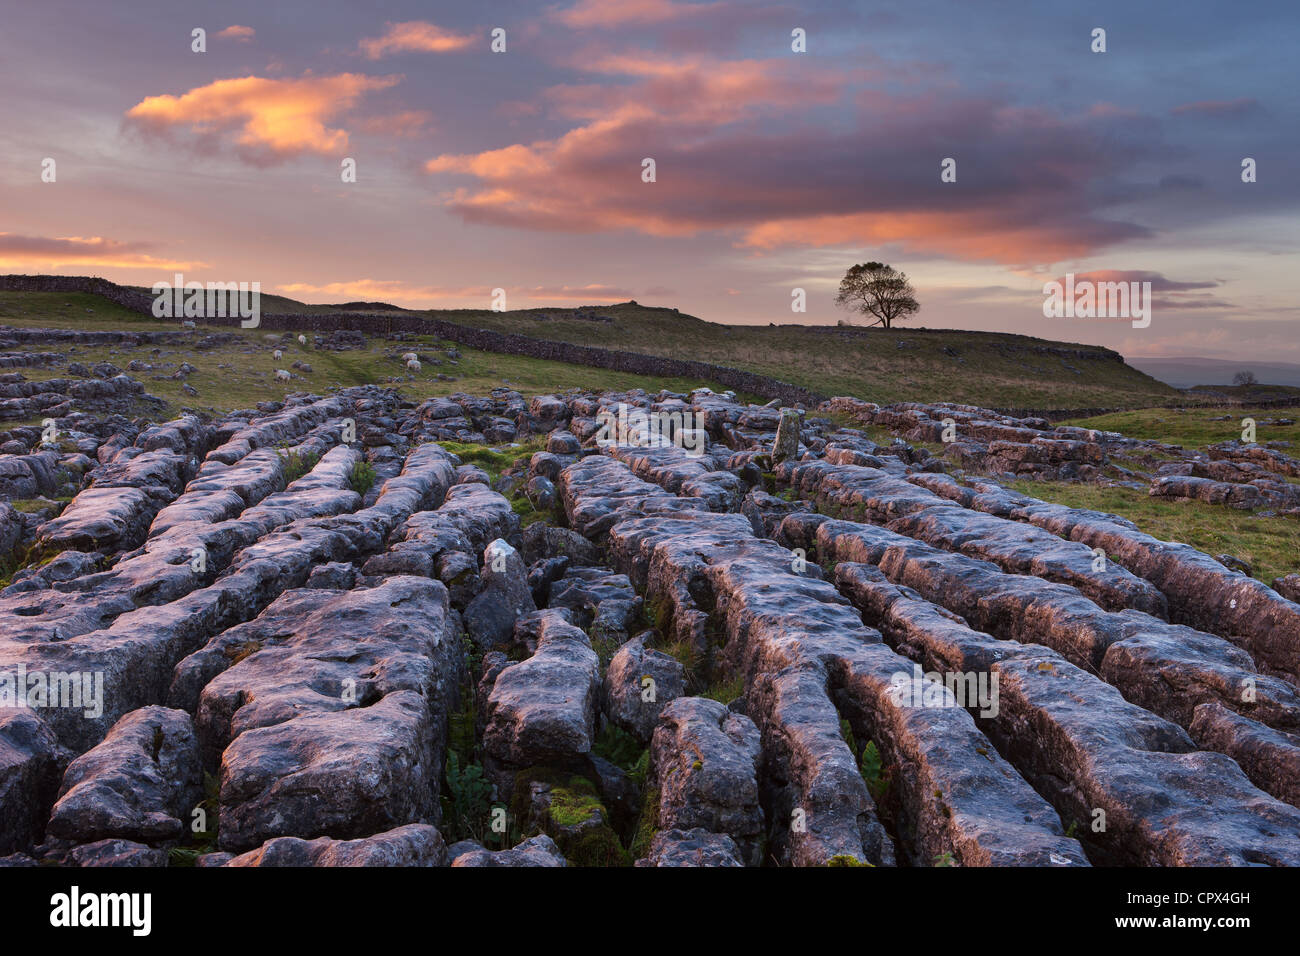 a limestone pavement on Malham Moor at dawn, Yorkshire Dales, England, UK - Stock Image